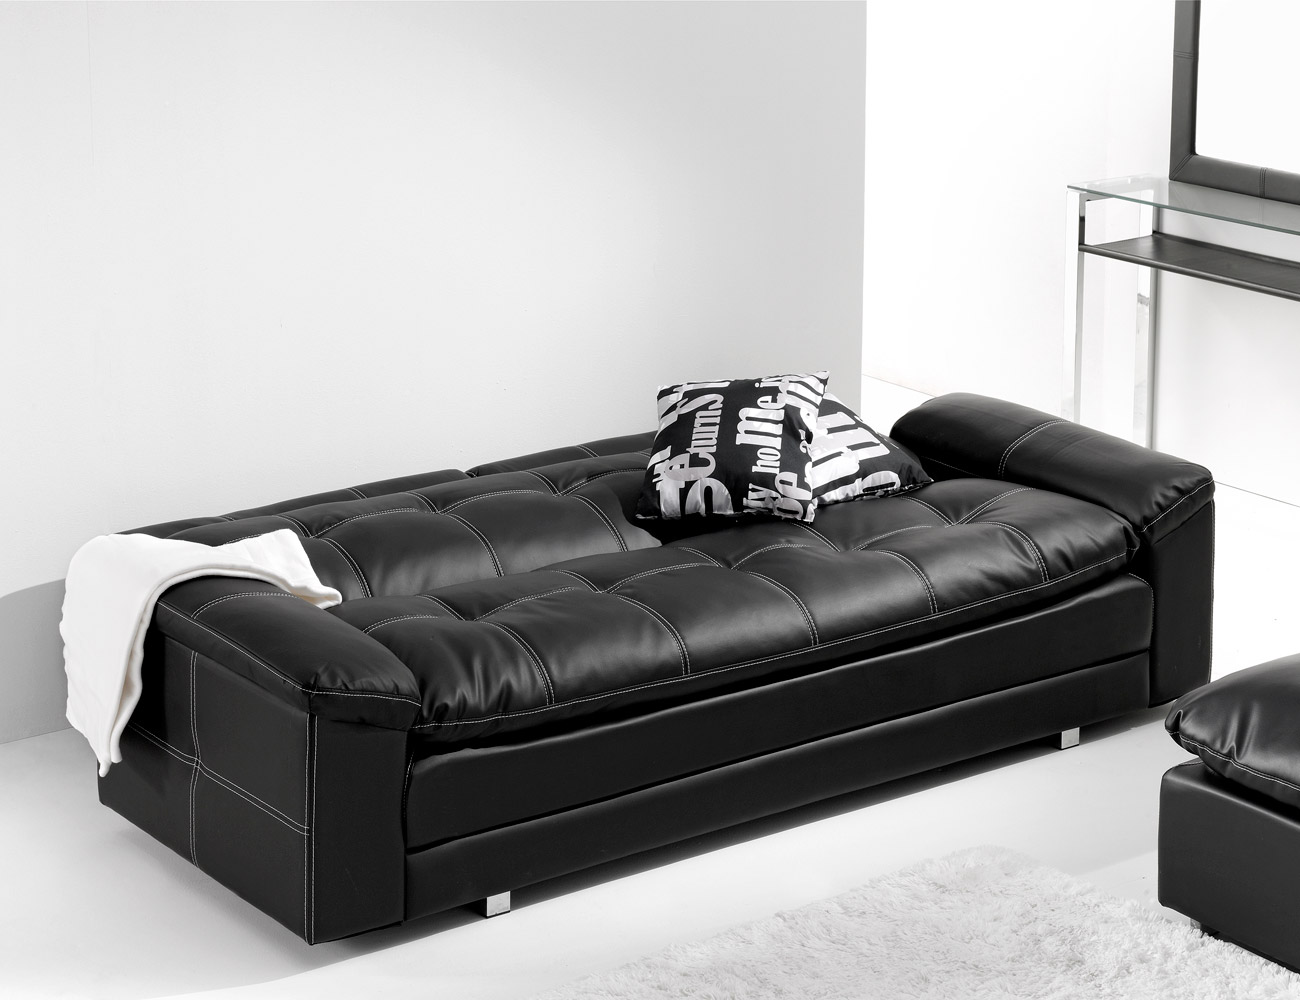 Sofa cama chaiselongue polipiel pouf reversible 3